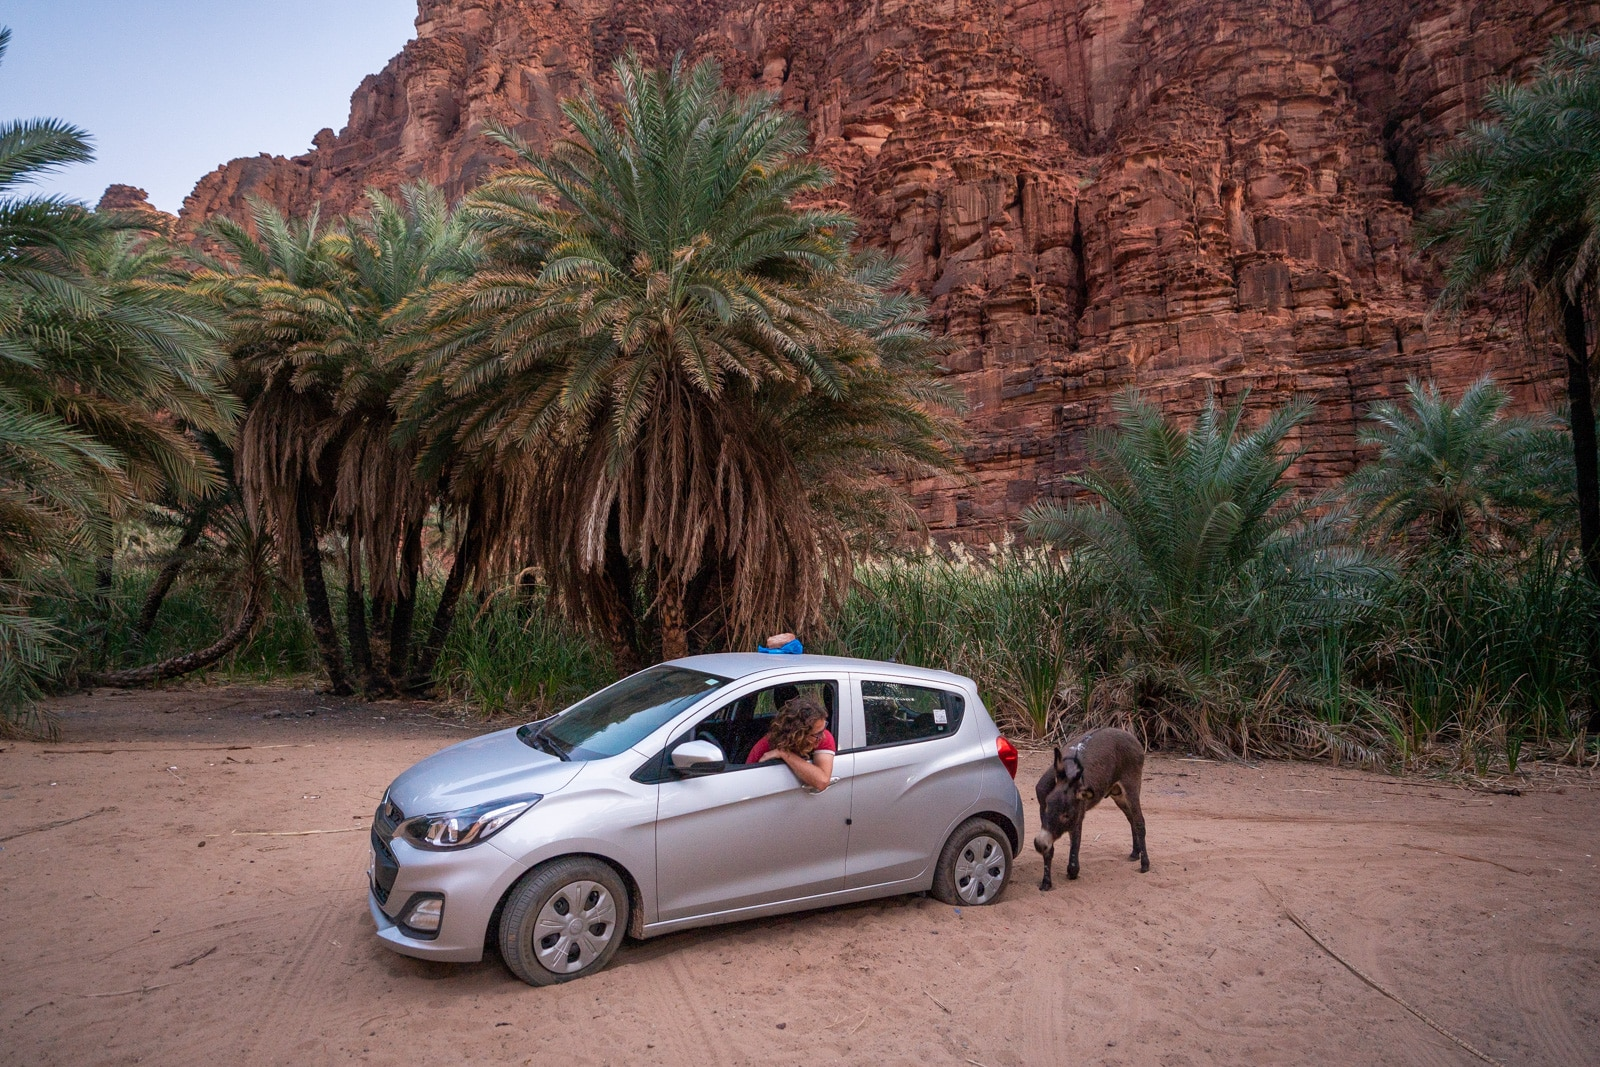 Donkey by rental car in Wadi Disah, Saudi Arabia